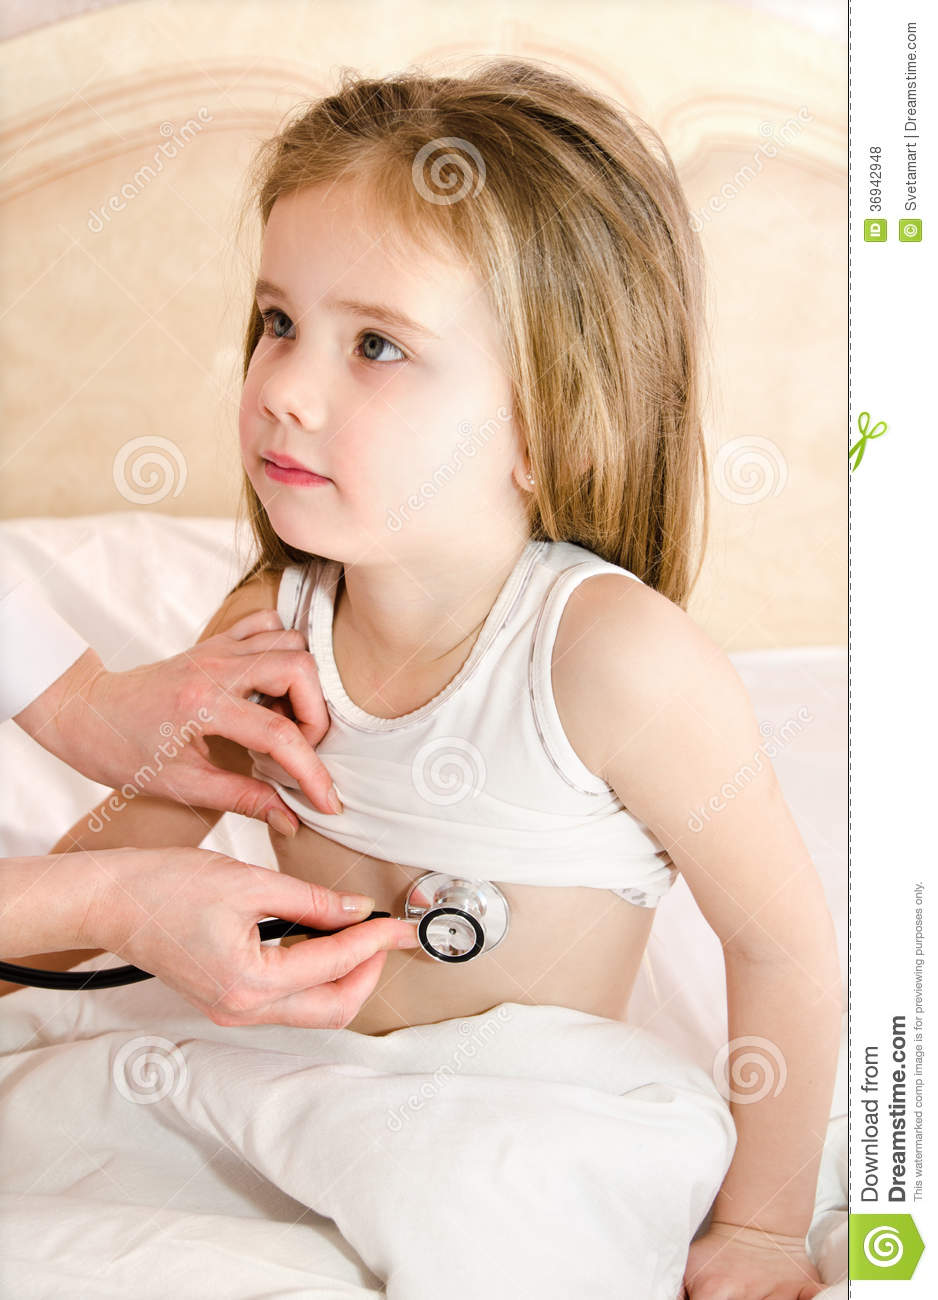 Little Girl At The Doctor For A Checkup Examination Stock